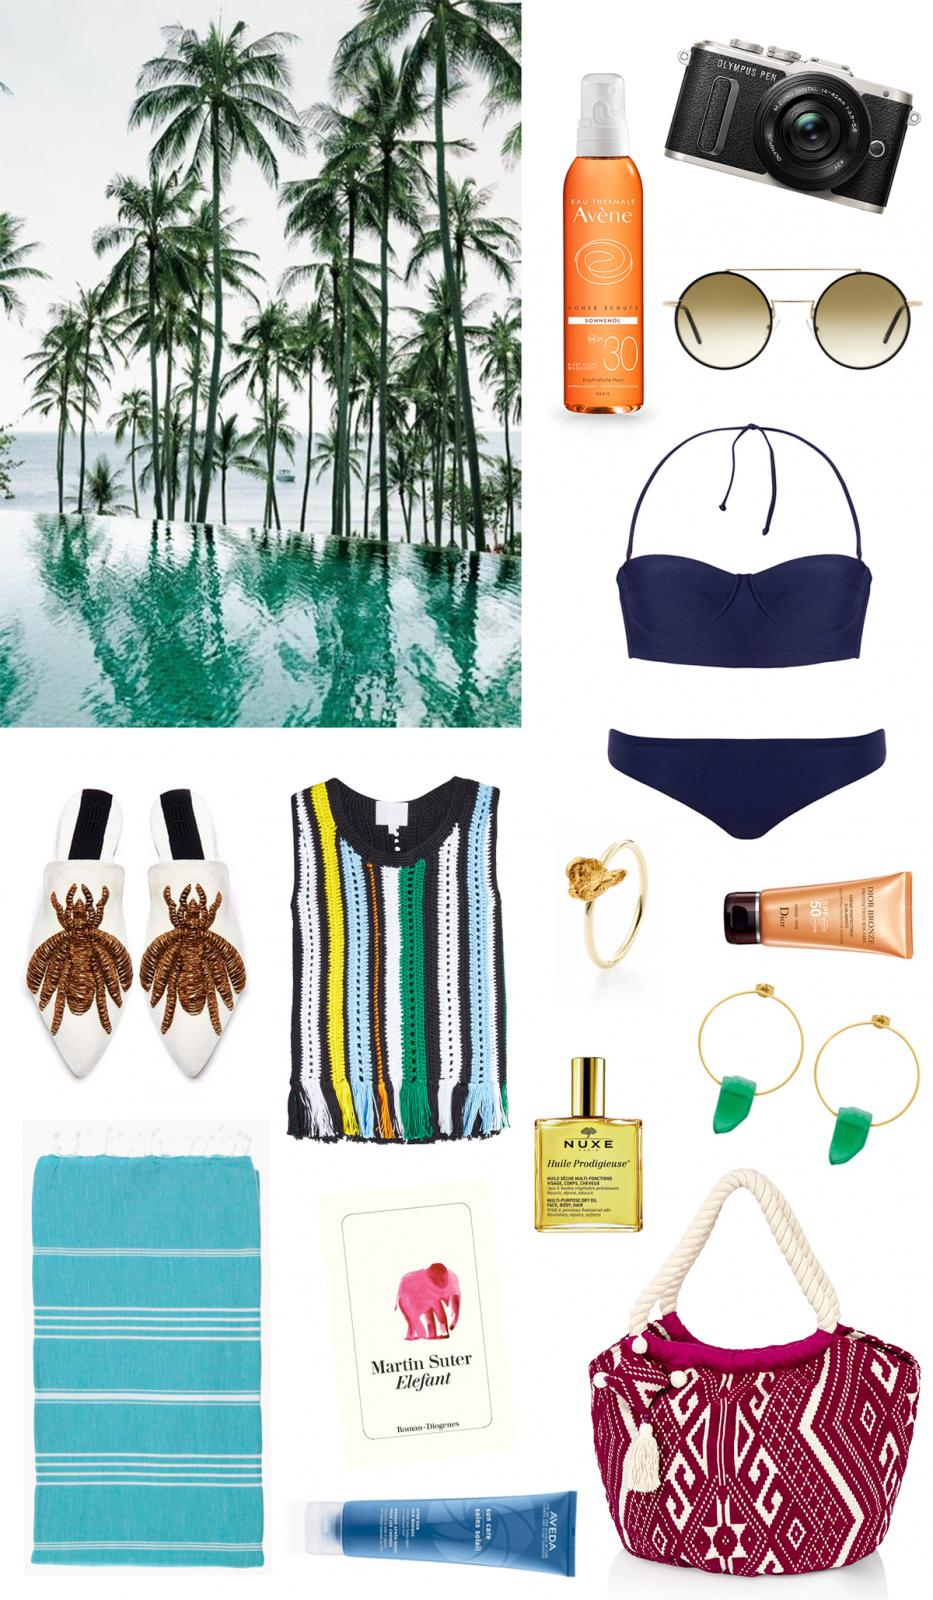 Thailand_Shopping-List_Collage_TRN